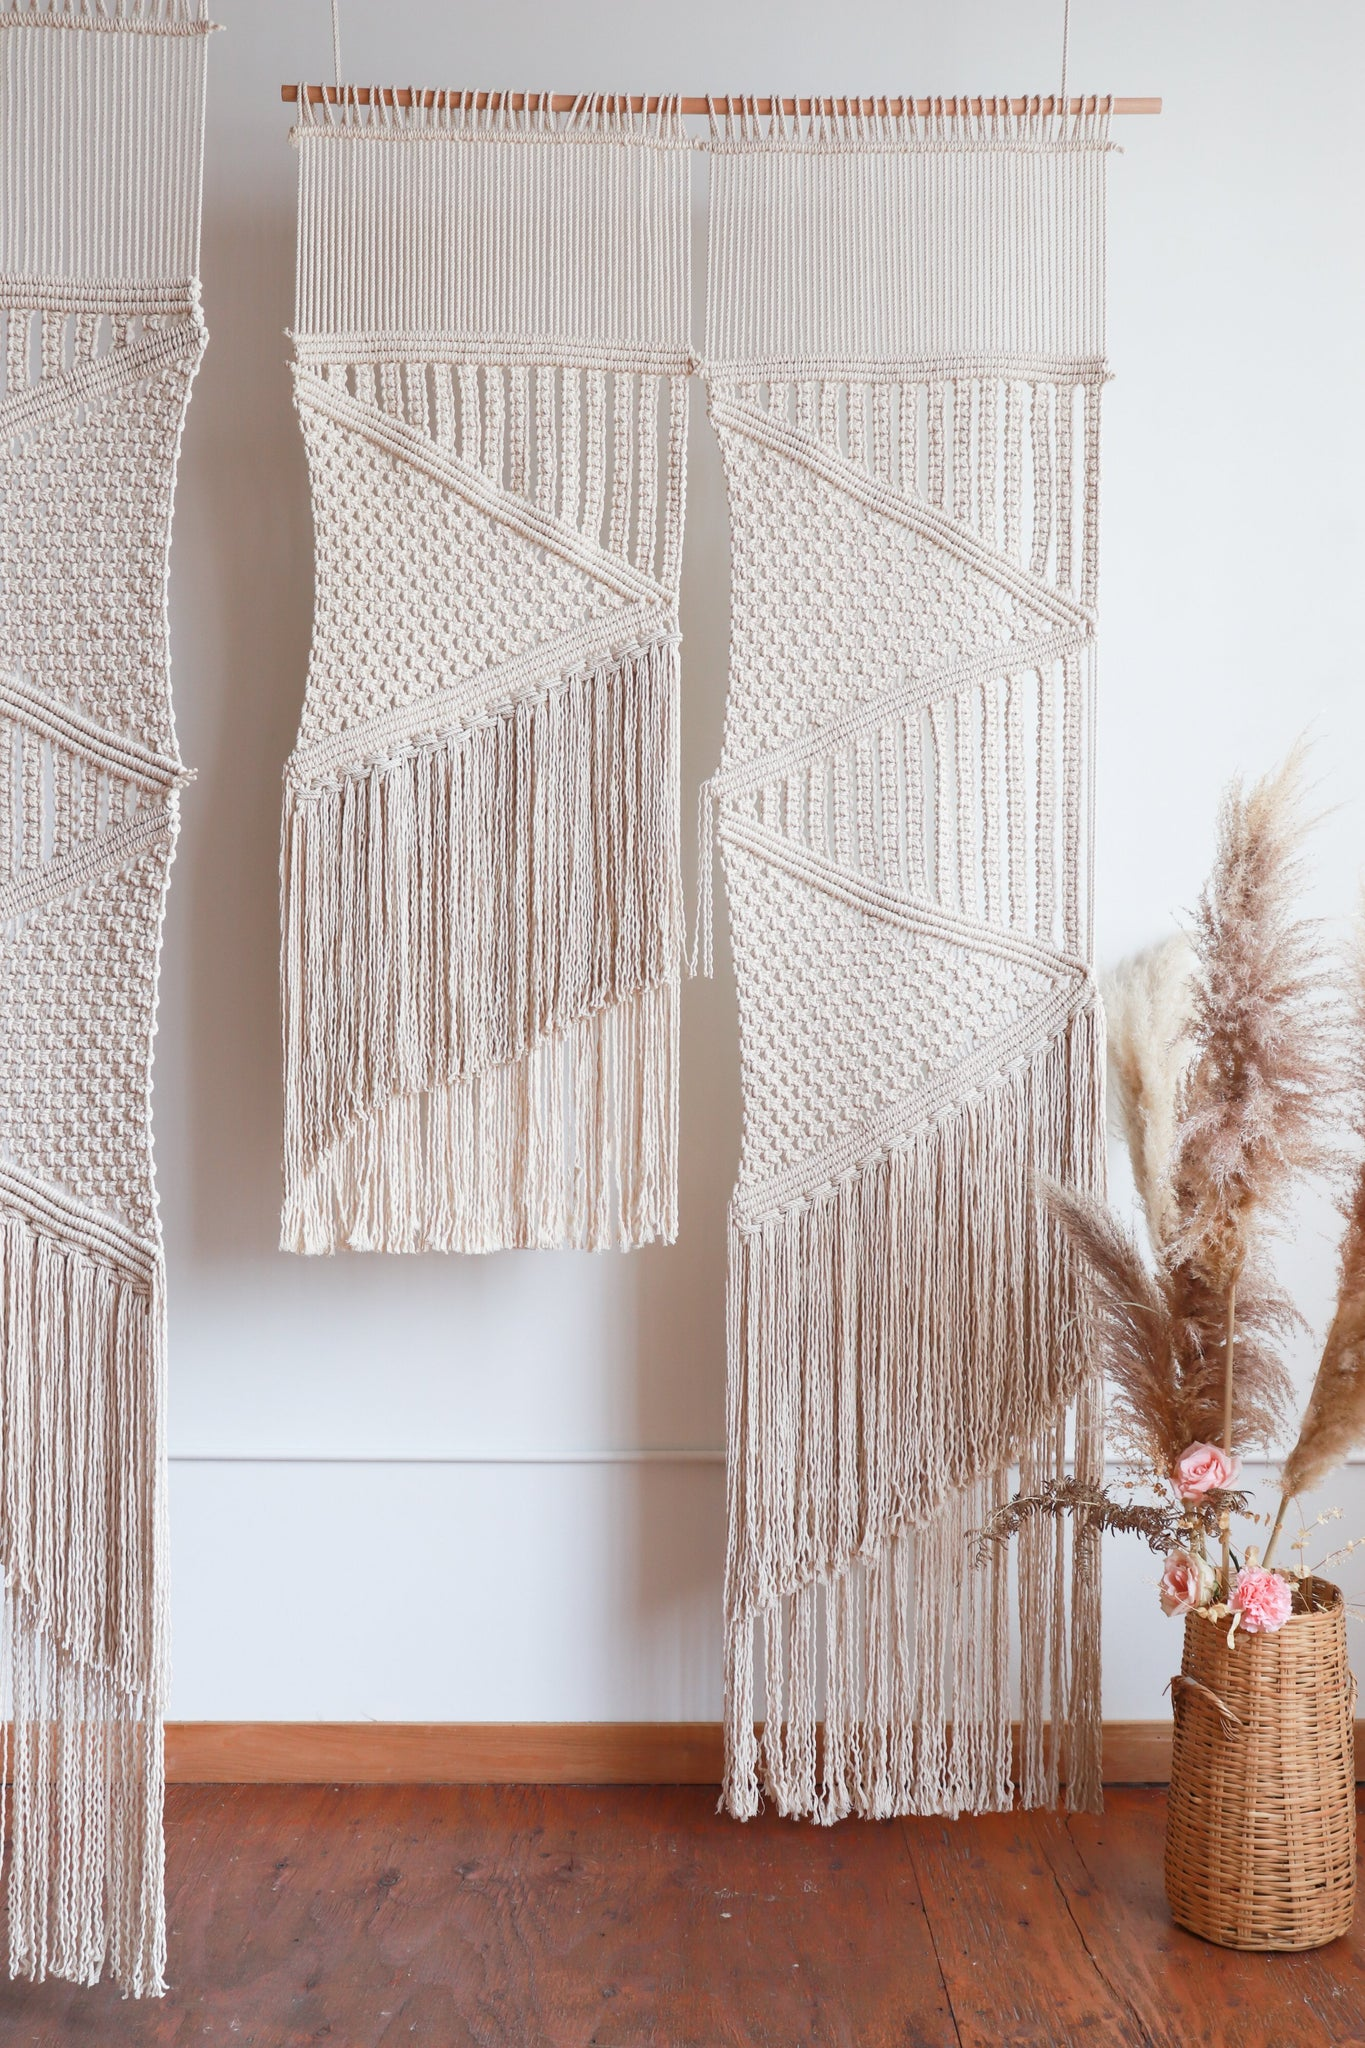 DIY Macramé wedding backdrop pattern